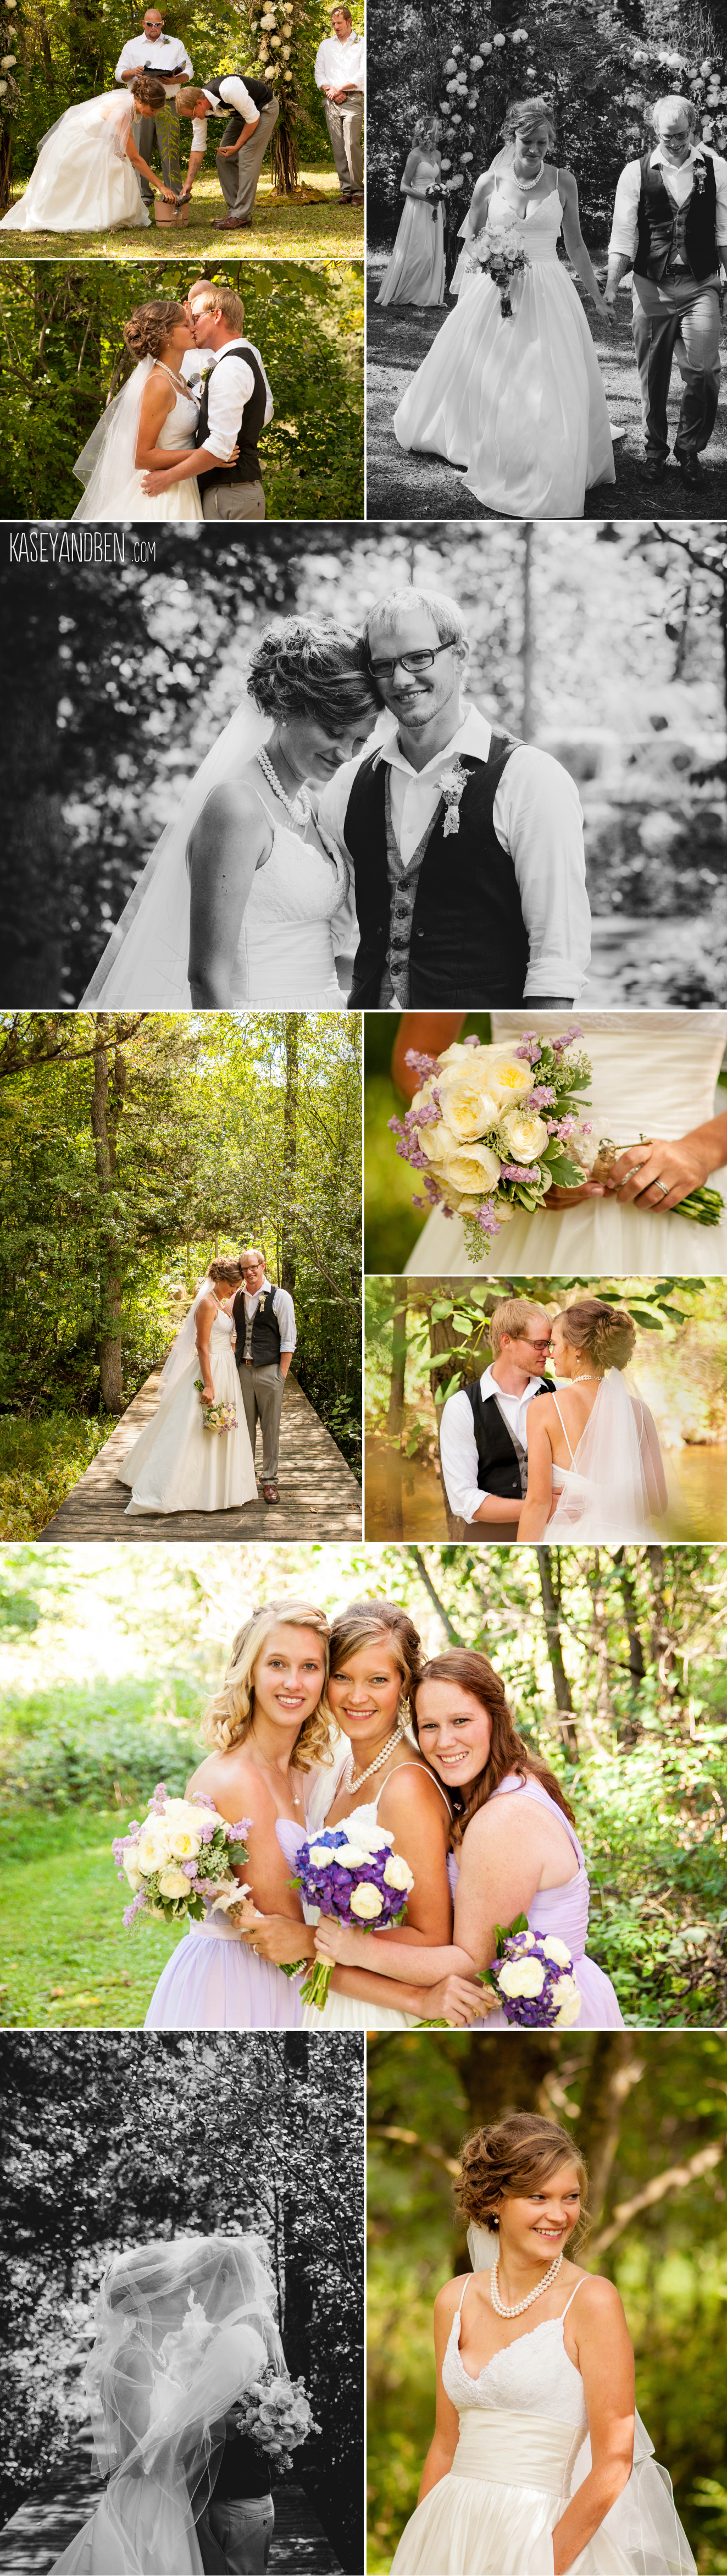 Wisconsin-Wedding-Waupaca-Barn-Farm-Photography-Bed-and-Breakfast-Apple-Tree-Lane-Photographers-Rustic-Country-Kasey-and-Ben-2